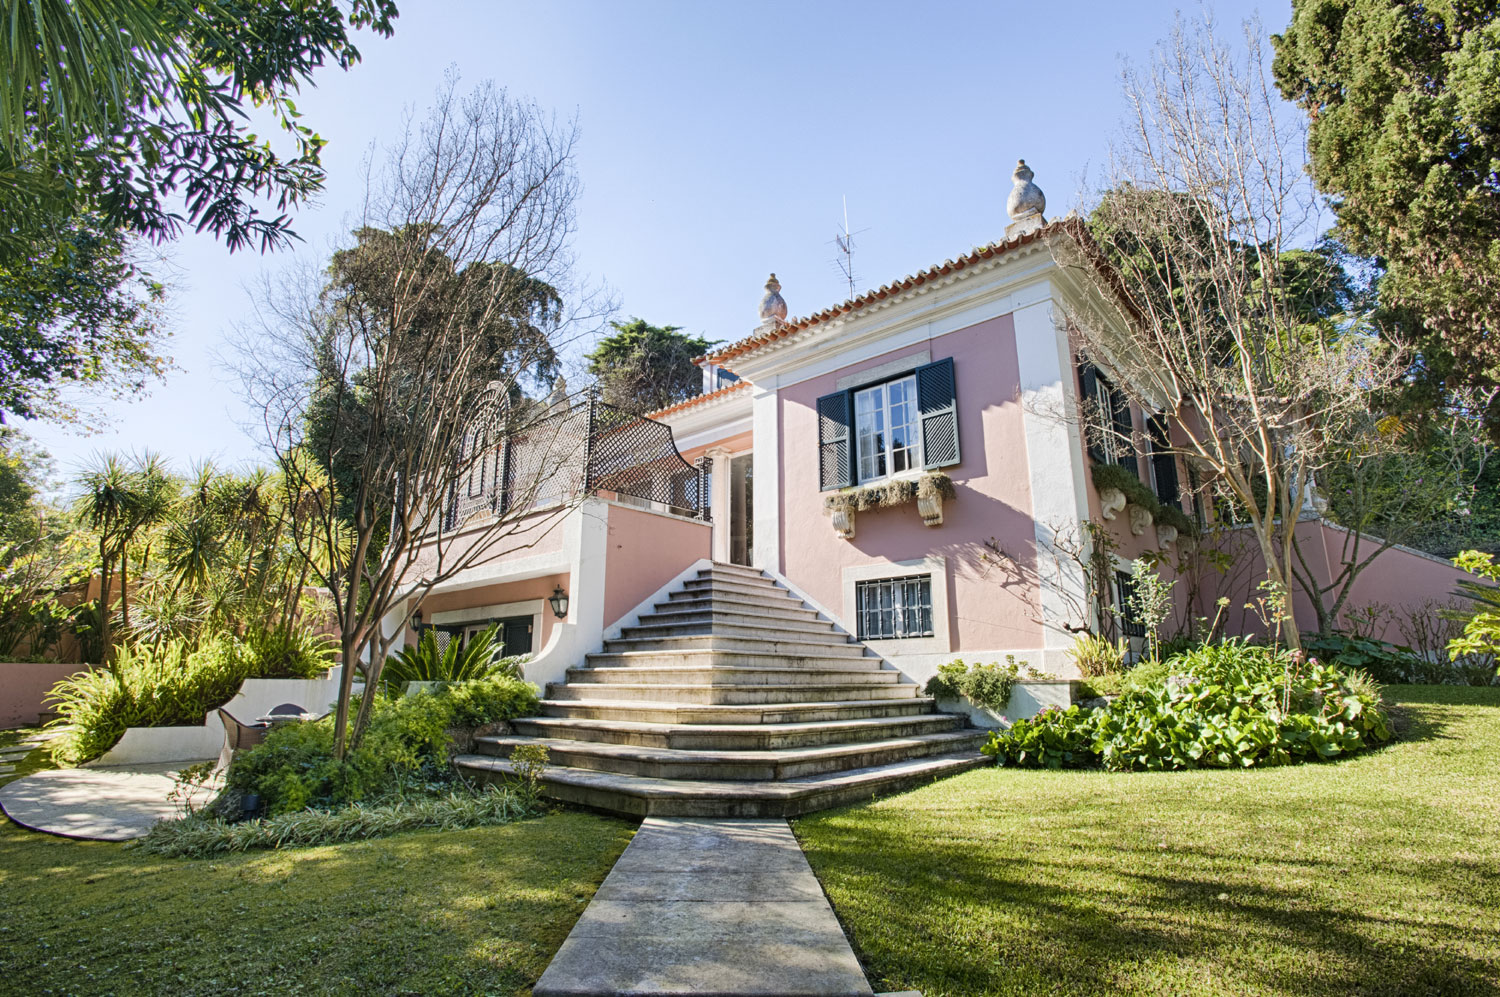 <b>Lisbon, Portugal</b><br/><i>10 Bedrooms, 4,617 sq. ft.</i><br/>Charming ten-bedroom villa